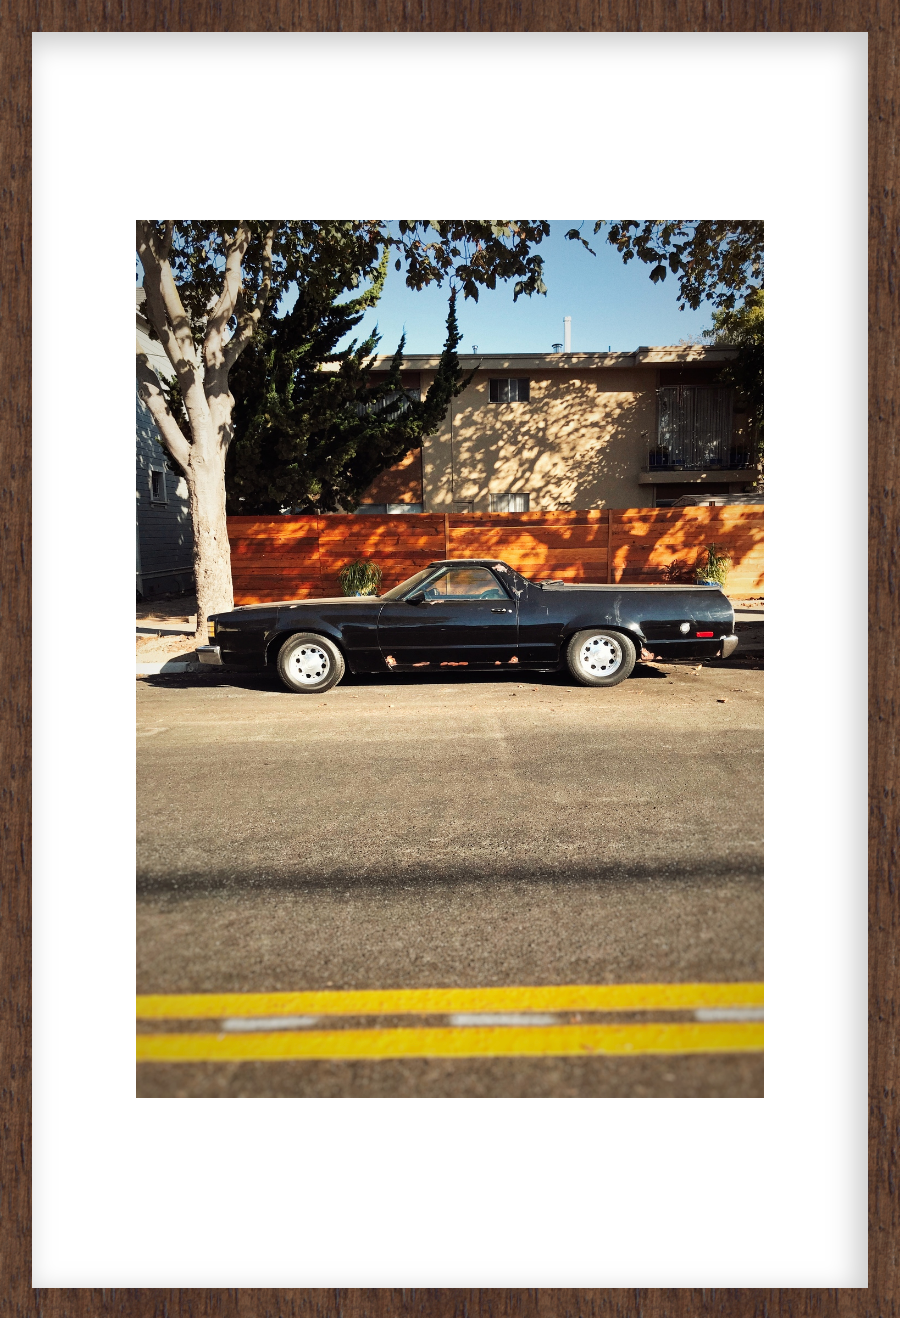 Cars 06, Framed Photograph by Laleh Latini